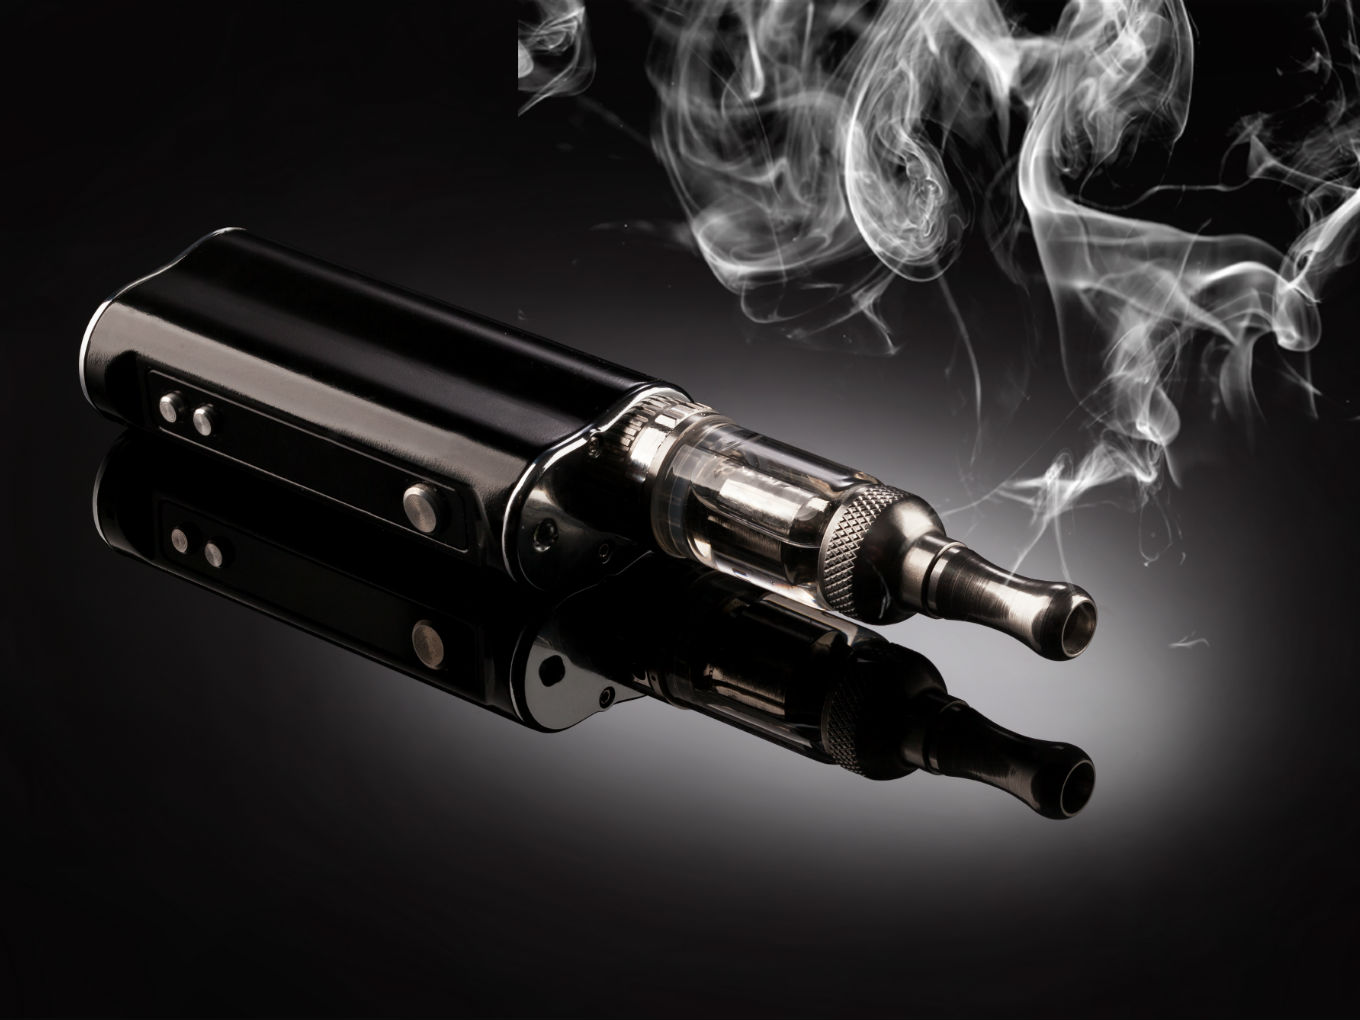 E-Cigarettes And Vapes Are Not Drugs To Be Regulated: Delhi HC